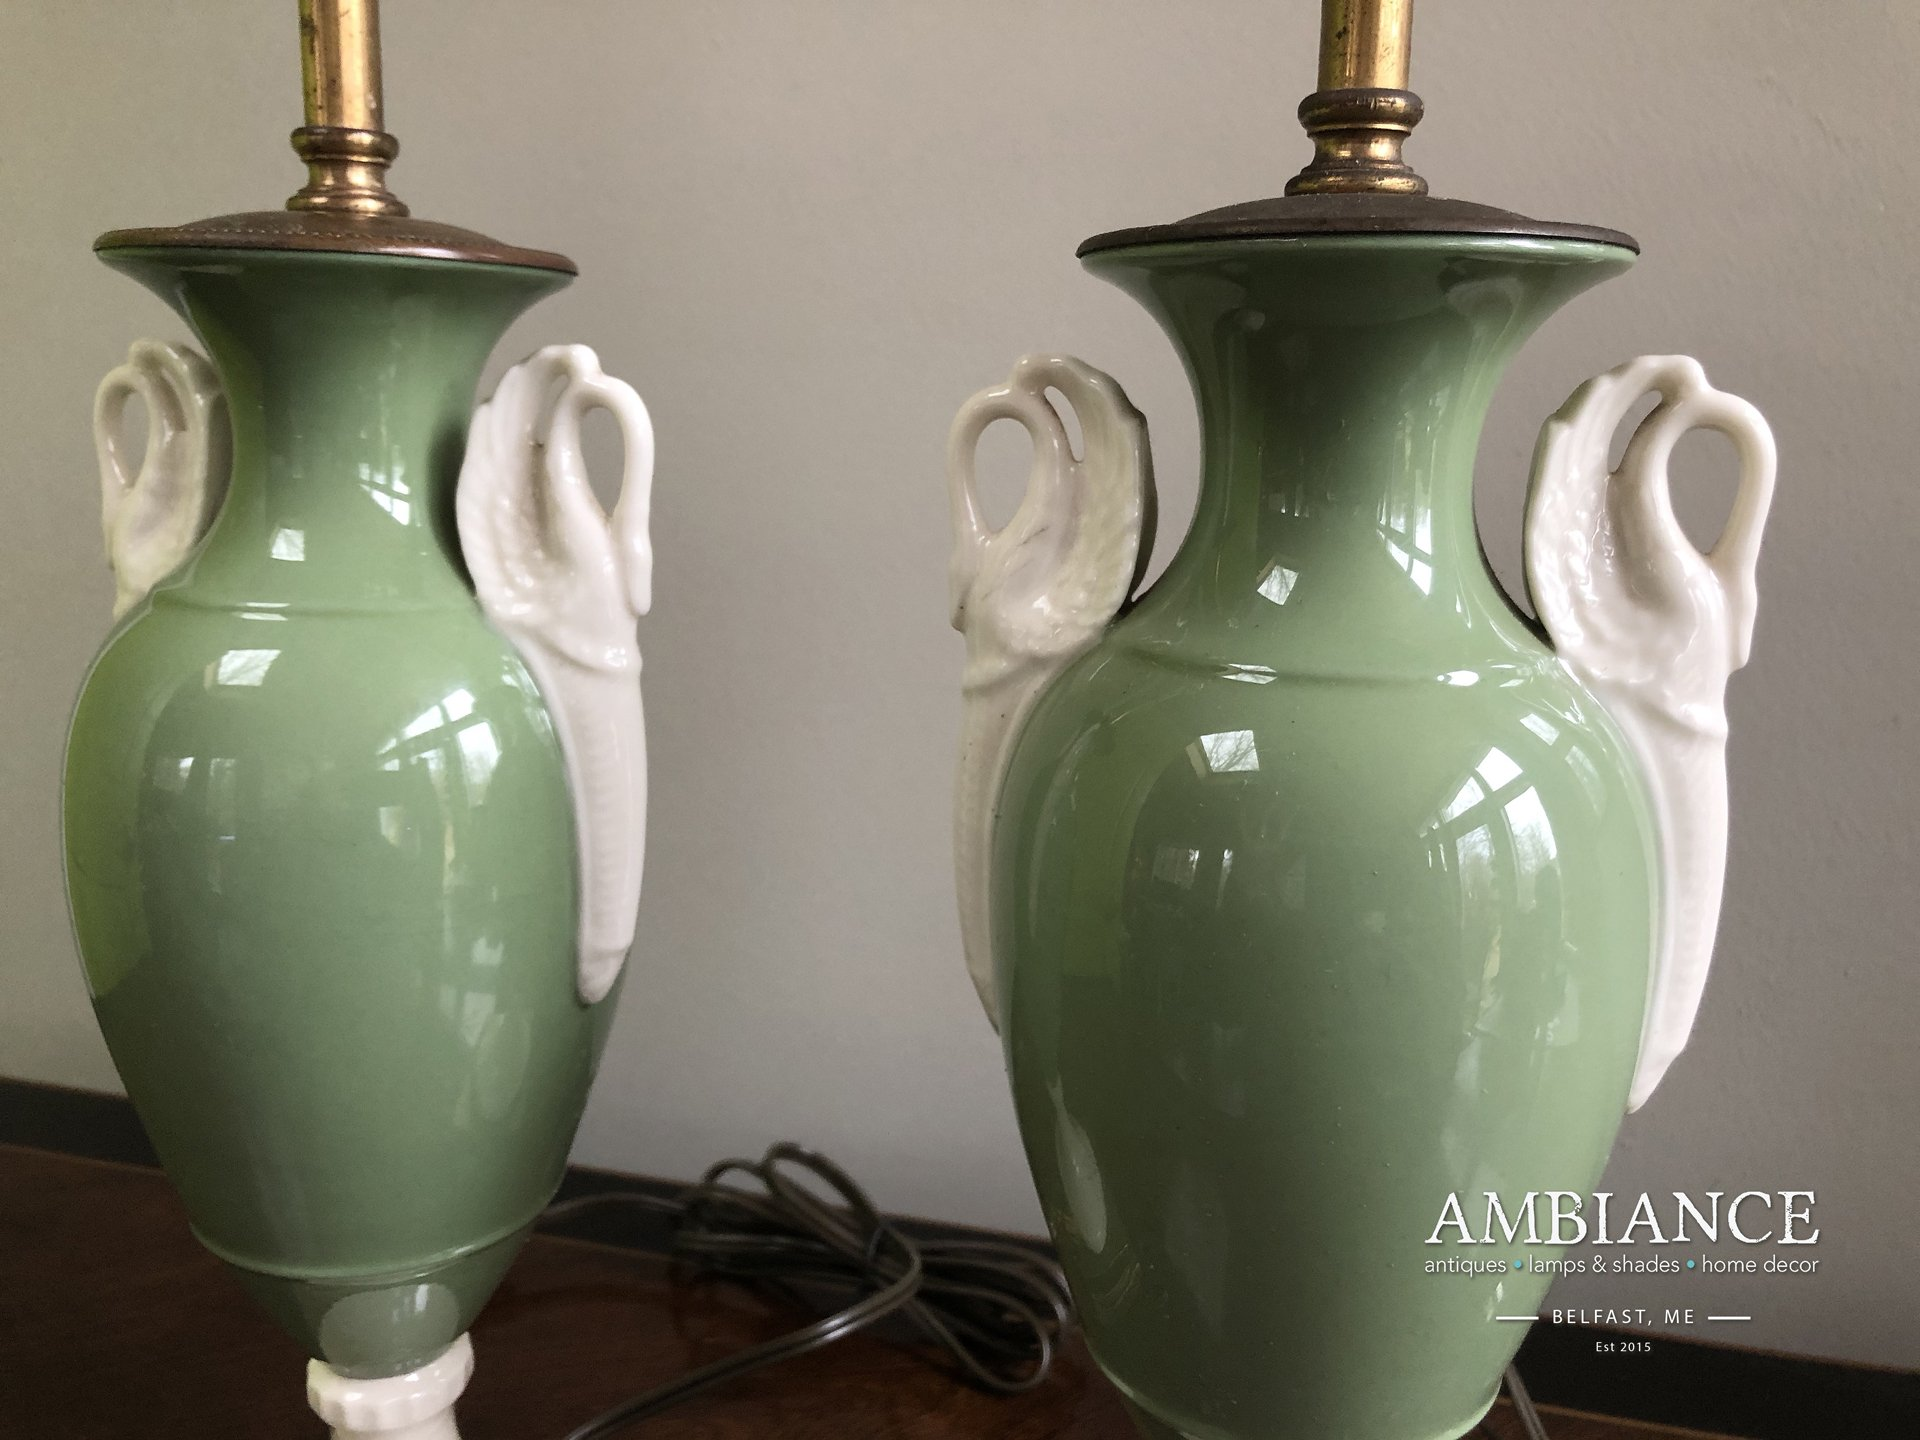 Mutual & Sunset Lamp Manufacturing Company Pair of Vintage Lamps for sale at AMBIANCE (01)